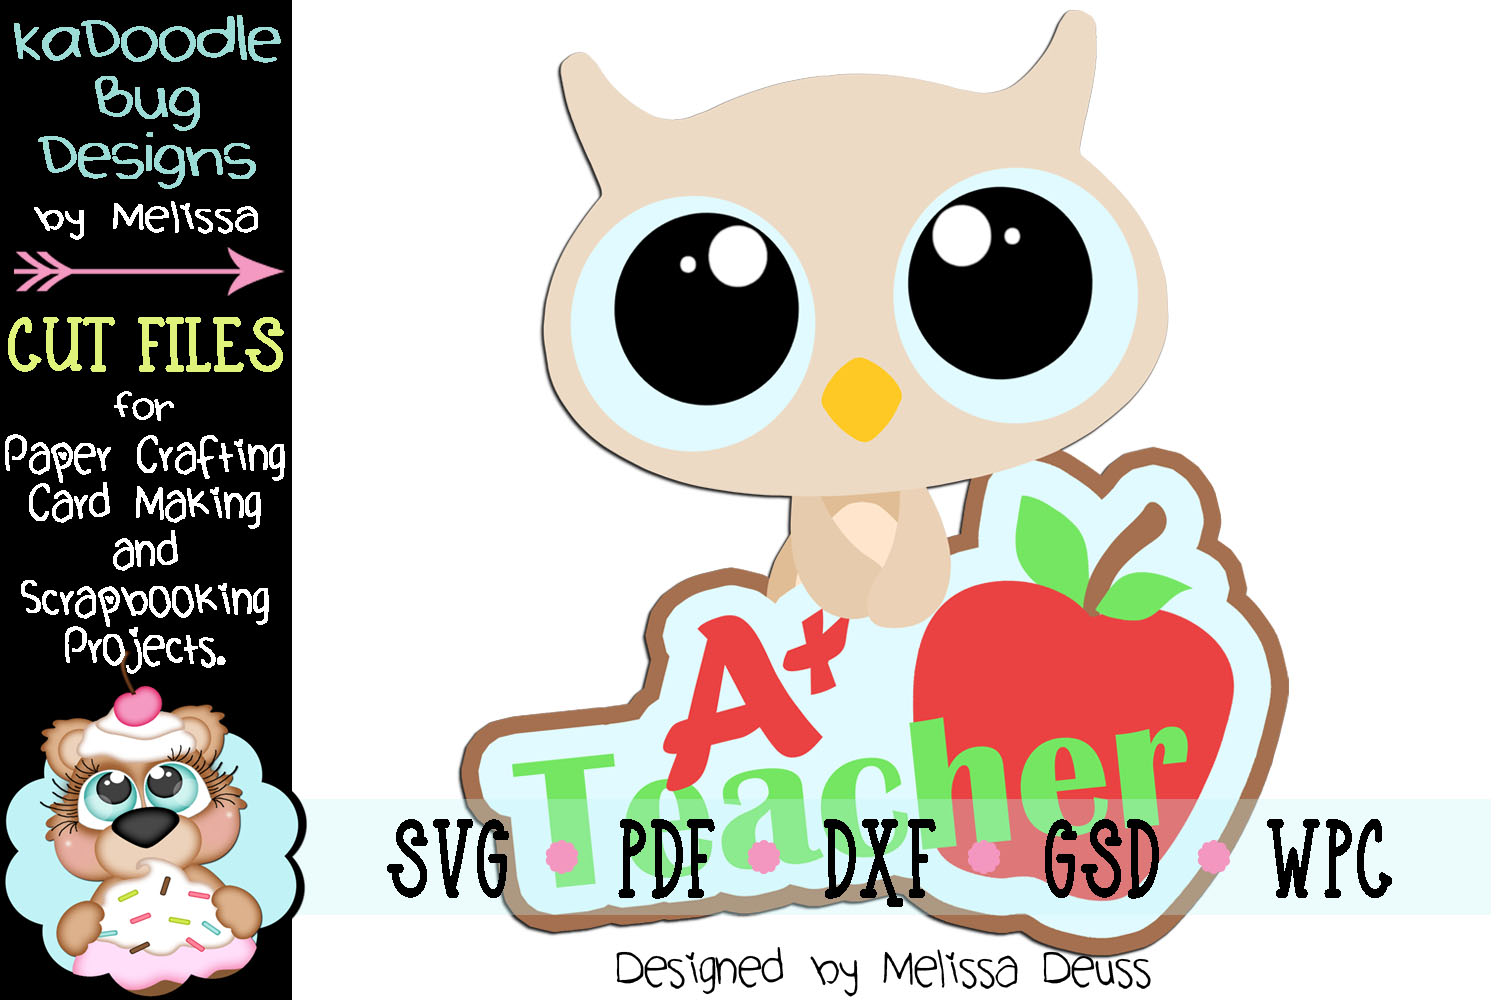 Teacher Baby Owl Cut File - SVG PDF DXF GSD WPC example image 1